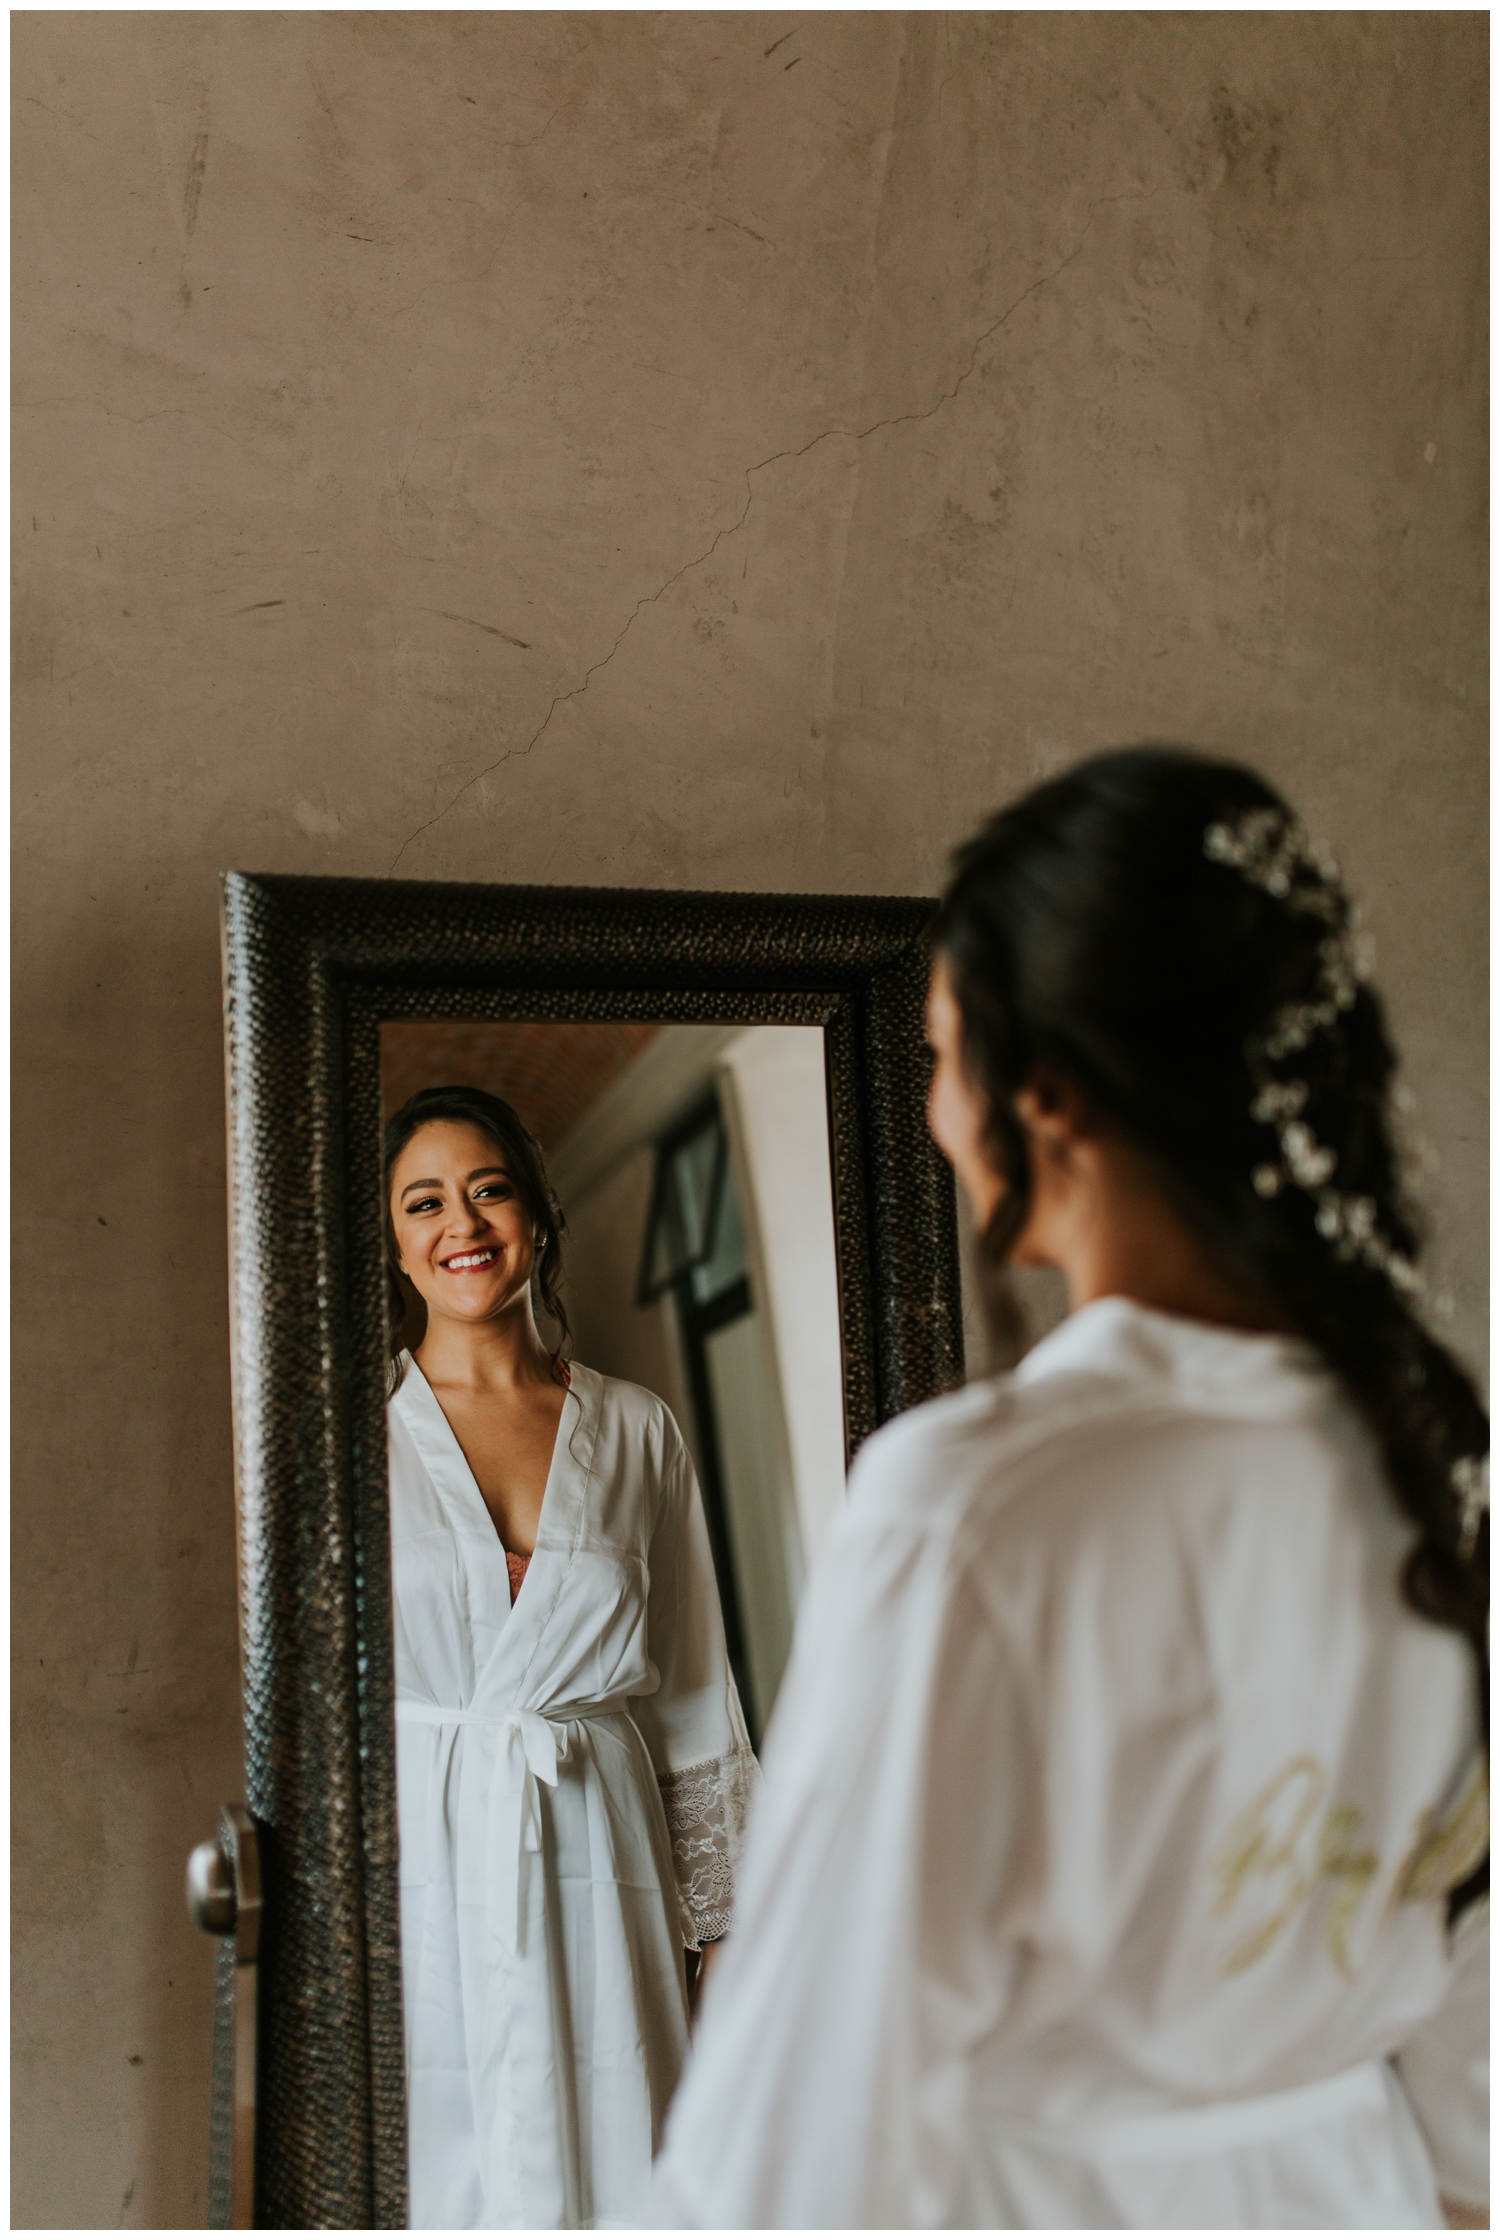 Shane+Sofia, San Miguel de Allende Wedding, Mexico Wedding, Contista Productions Wedding Photography_0021.jpg